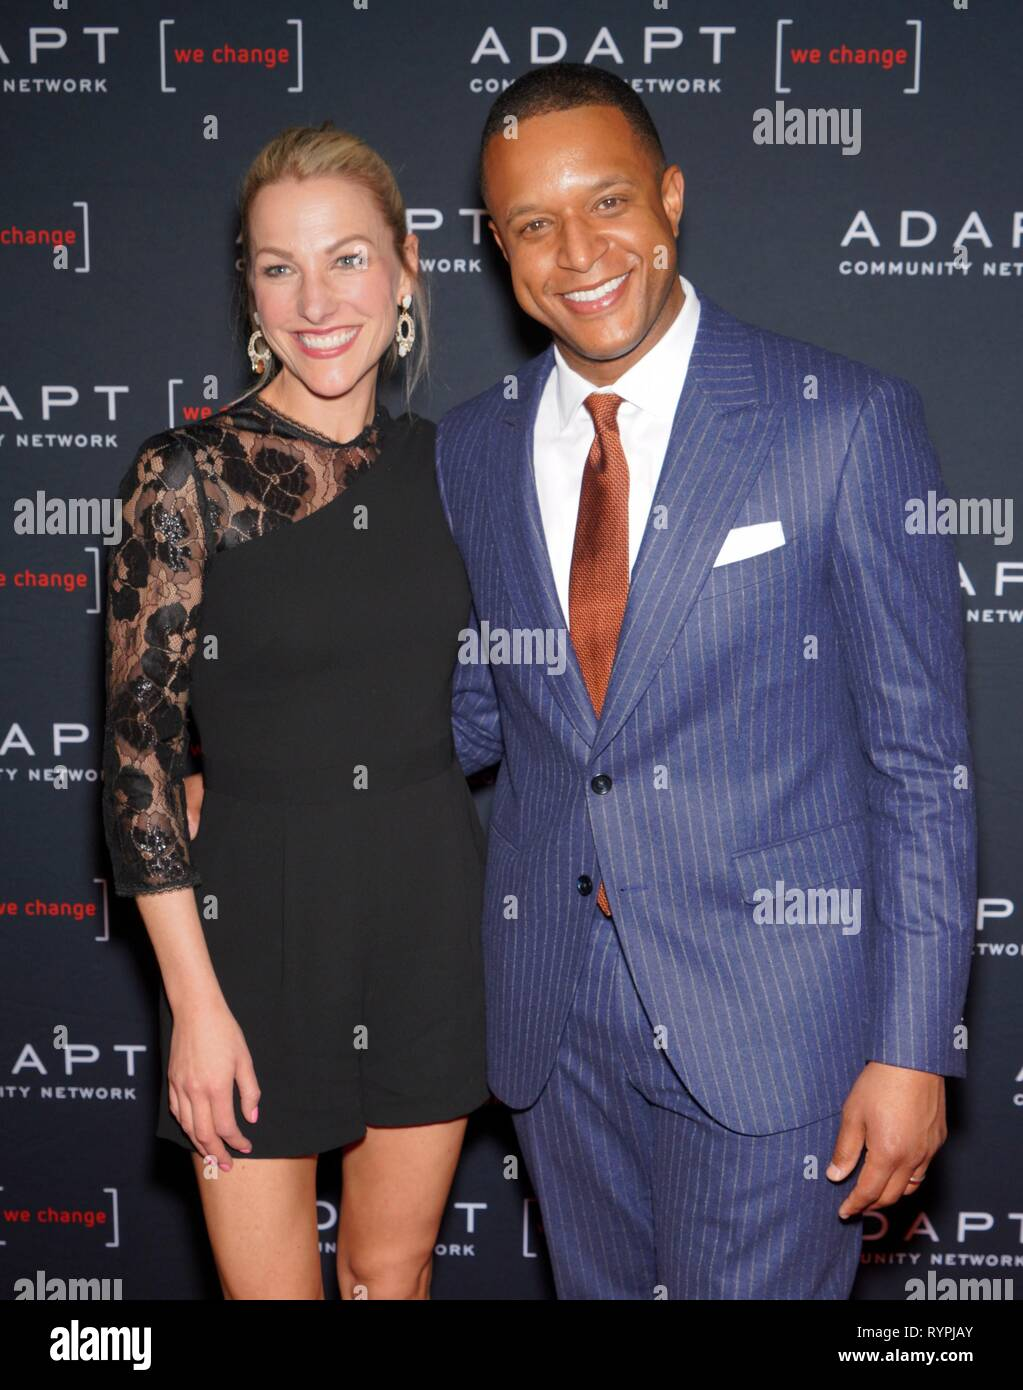 New York, NY, USA. 14th Mar, 2019. at arrivals for The 2019 ADAPT Leadership Awards Gala, Cipriani 42nd Street, New York, NY March 14, 2019. Credit: Eli Winston/Everett Collection/Alamy Live News - Stock Image